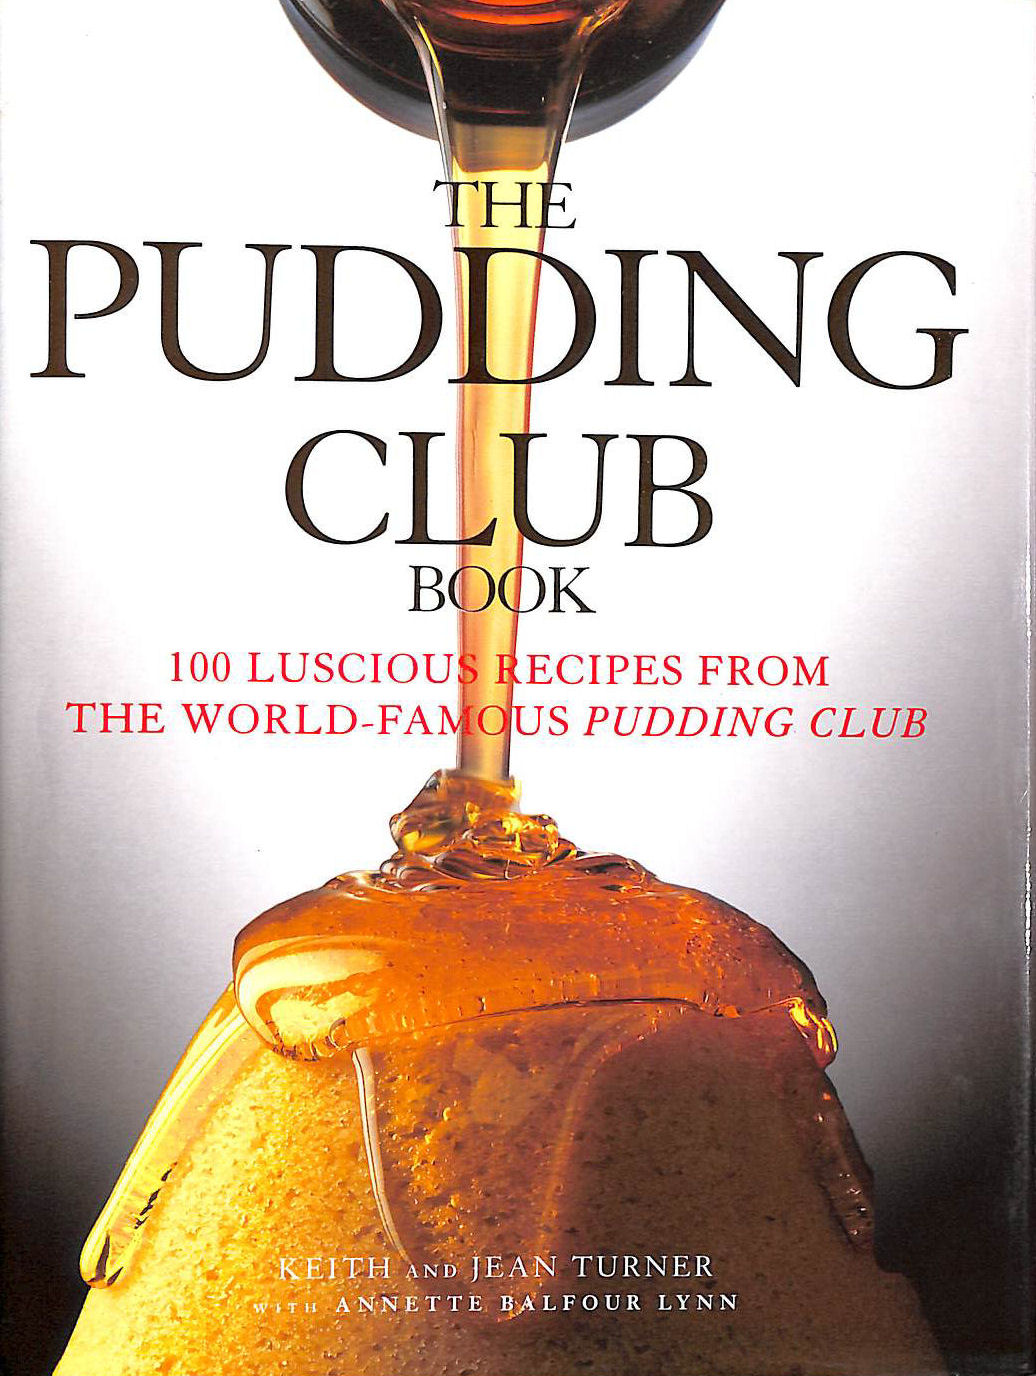 Image for The Pudding Club Book: 100 Luscious Recipes from the World-Famous Pudding Club